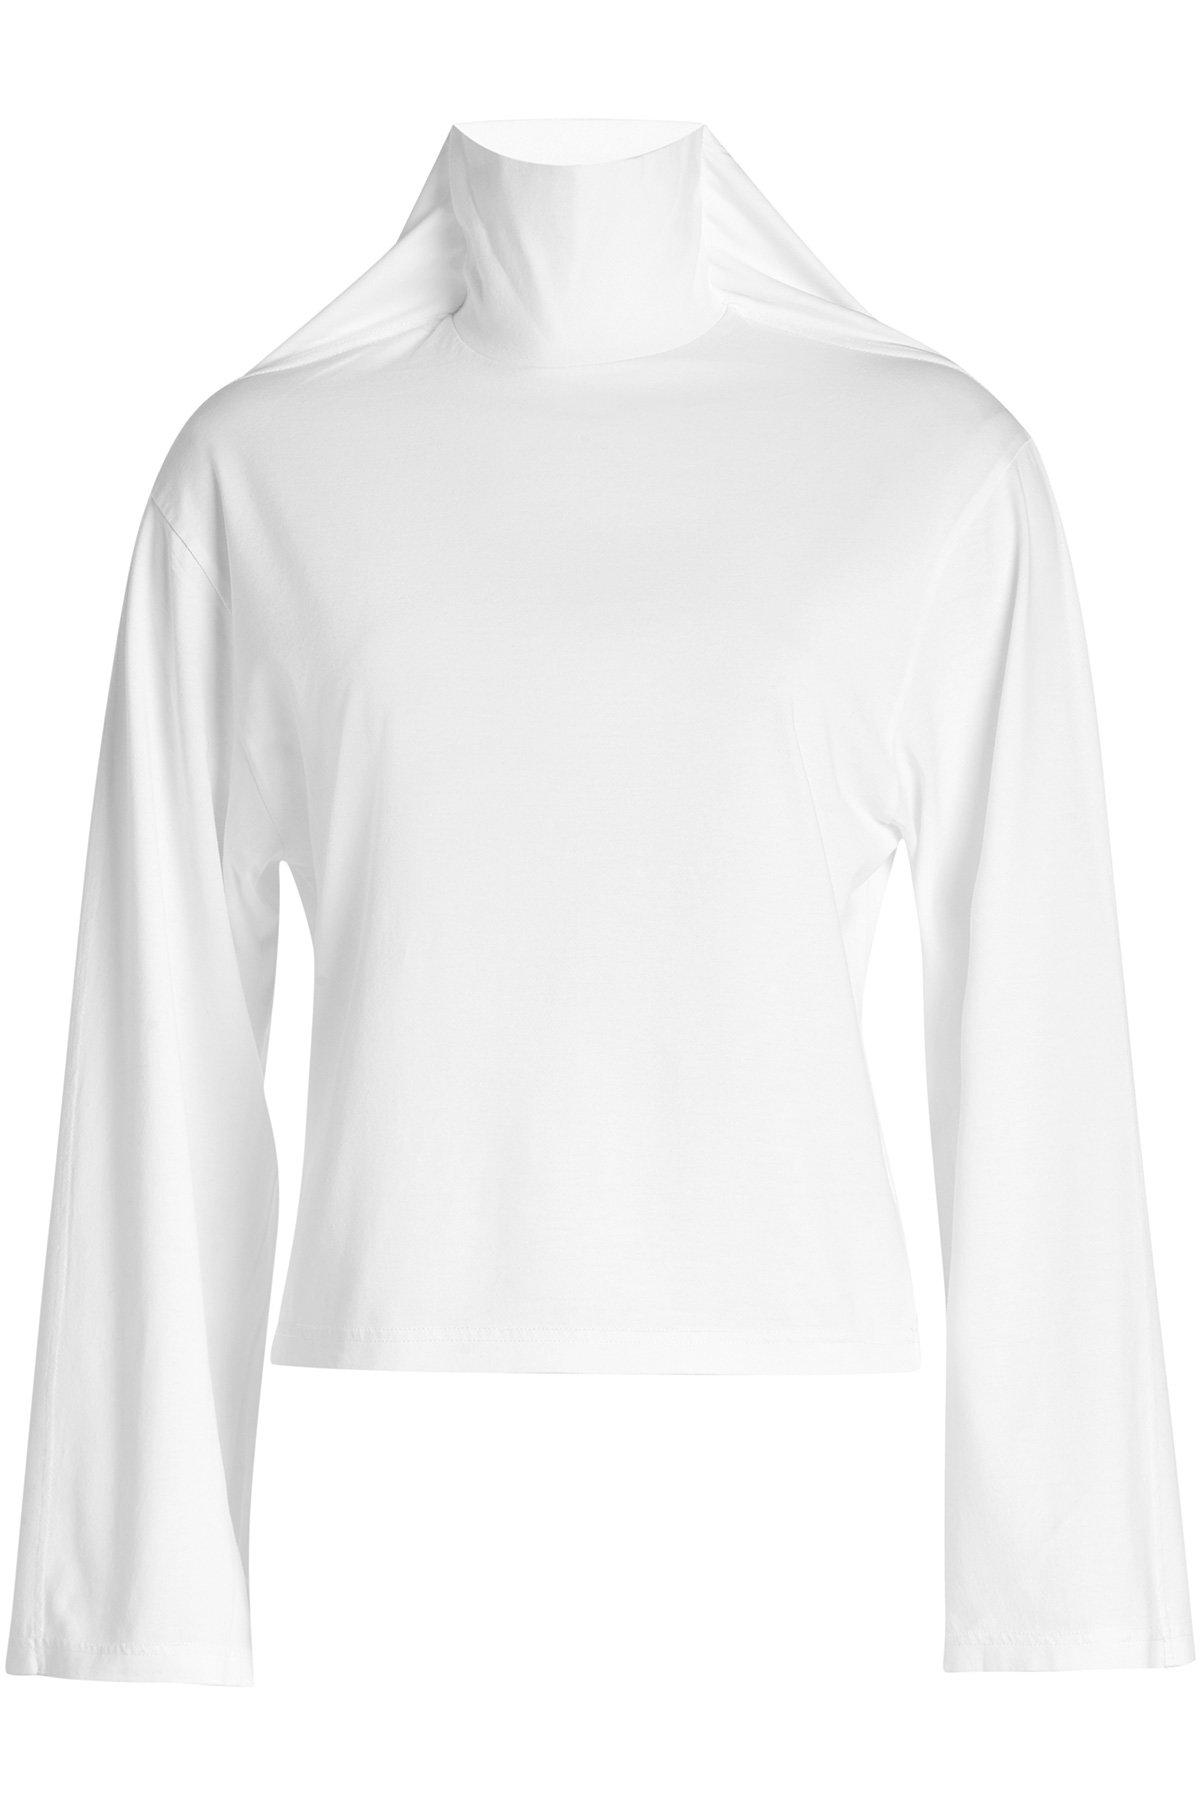 Y/Project Panel-Sleeve Cotton Turtleneck In White